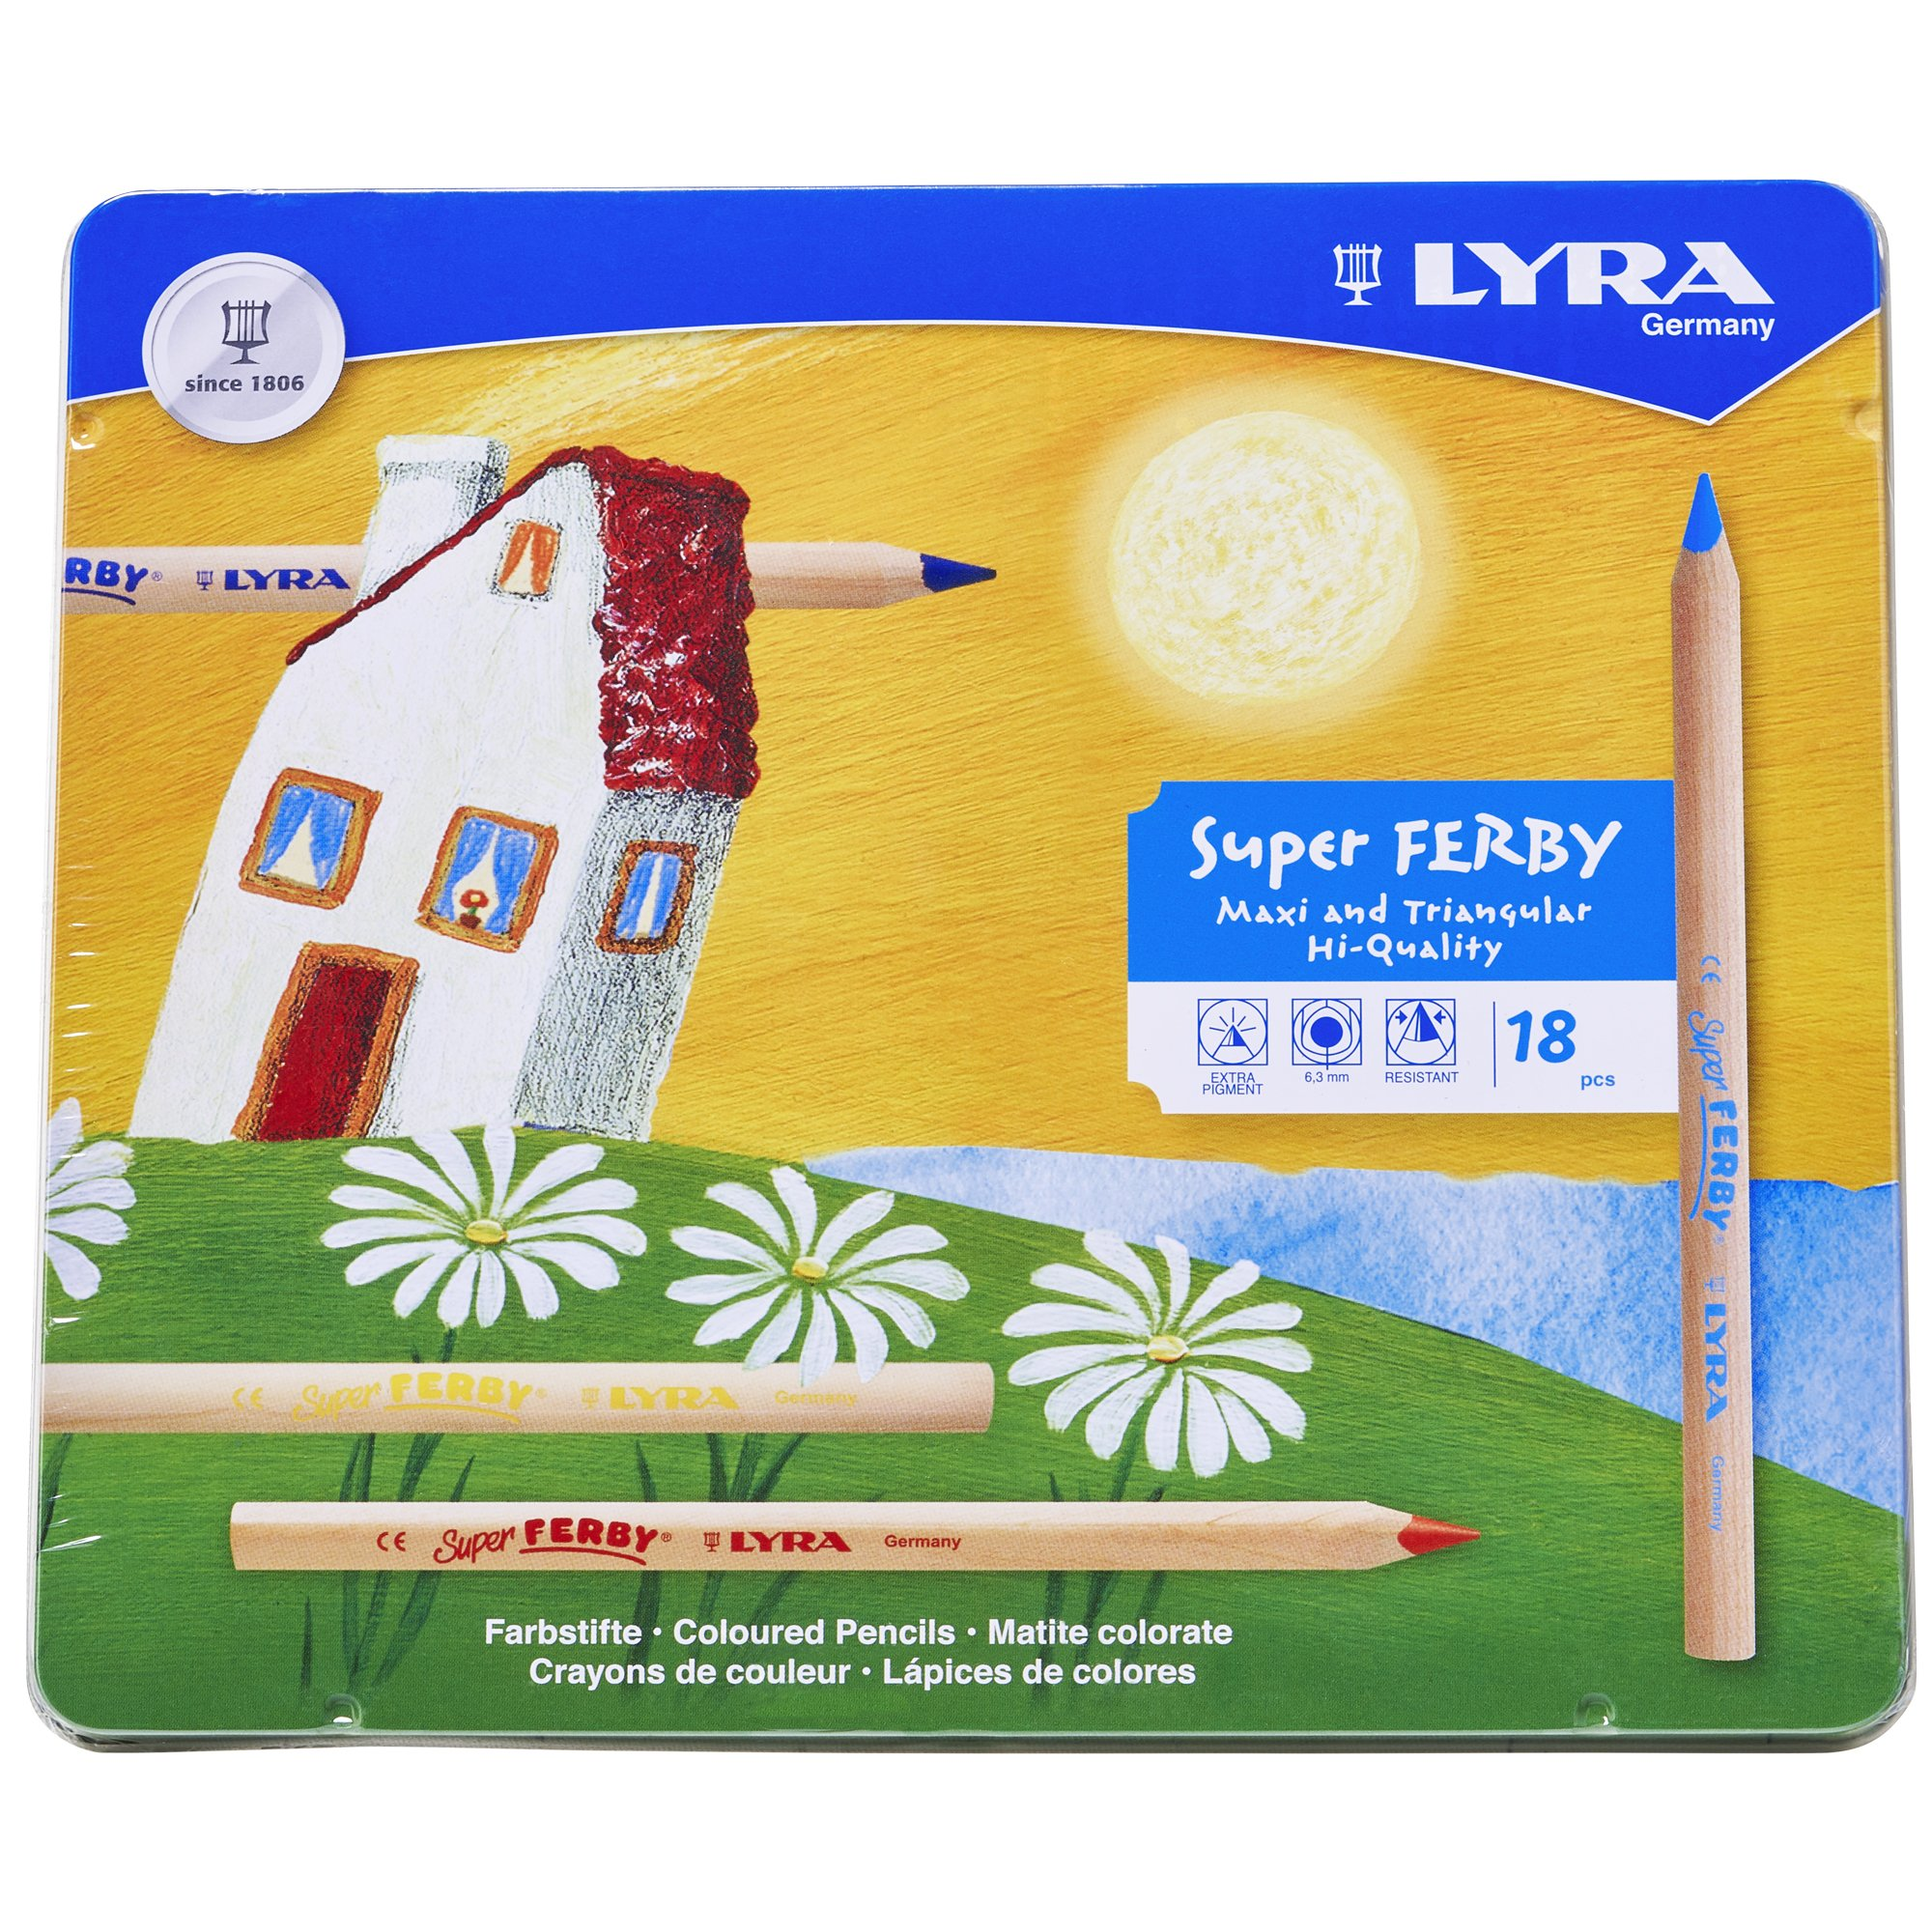 LYRA Super Ferby Giant Triangular Colored Pencil, Unlacquered, 6.25 Millimeter Cores, Assorted Colors, 18-Pack (3711180) by Lyra (Image #1)